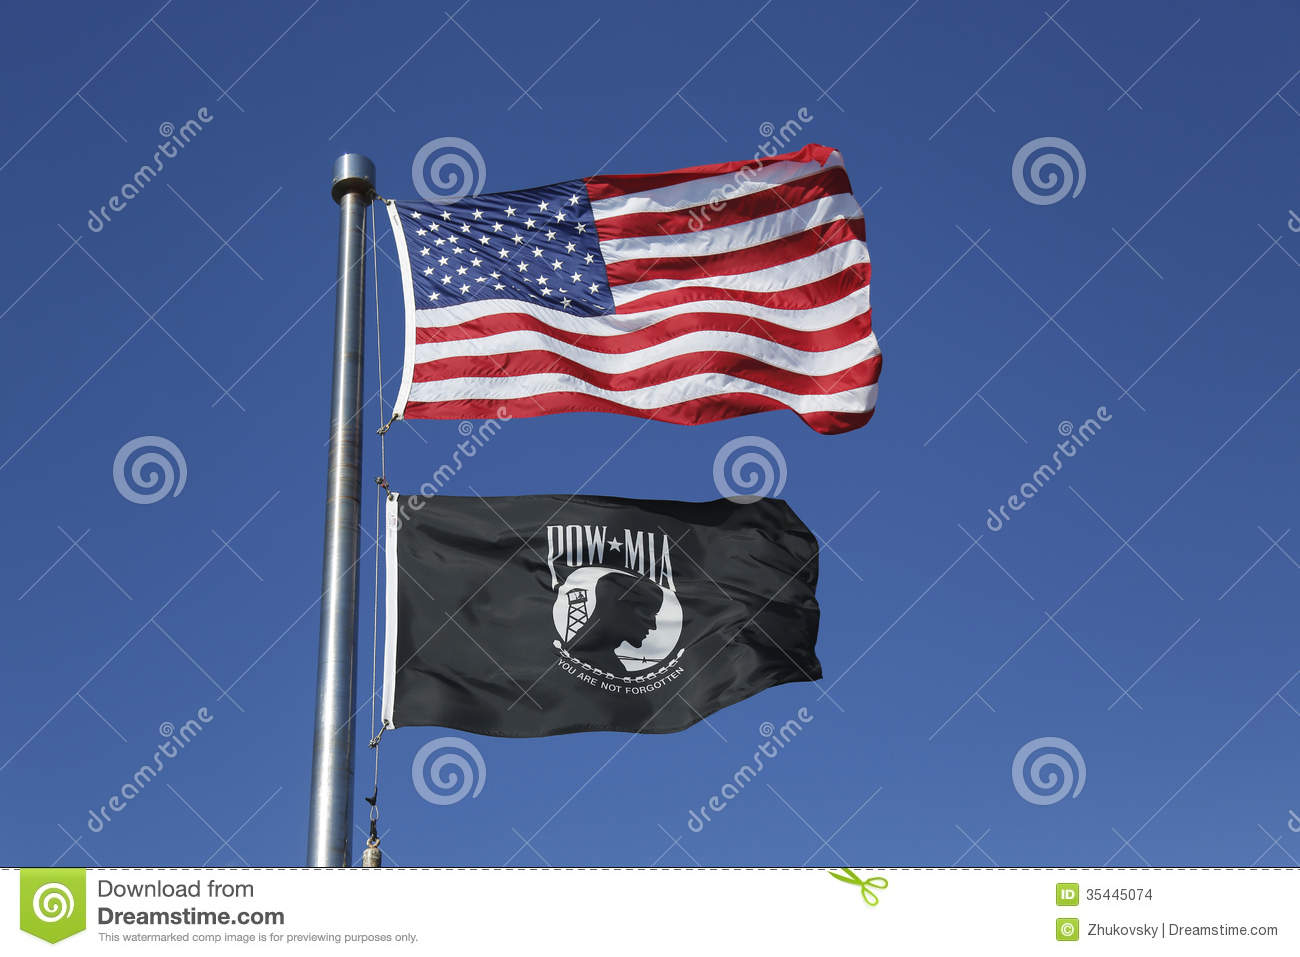 American And POW/MIA Flags Stock Images - Image: 35445074